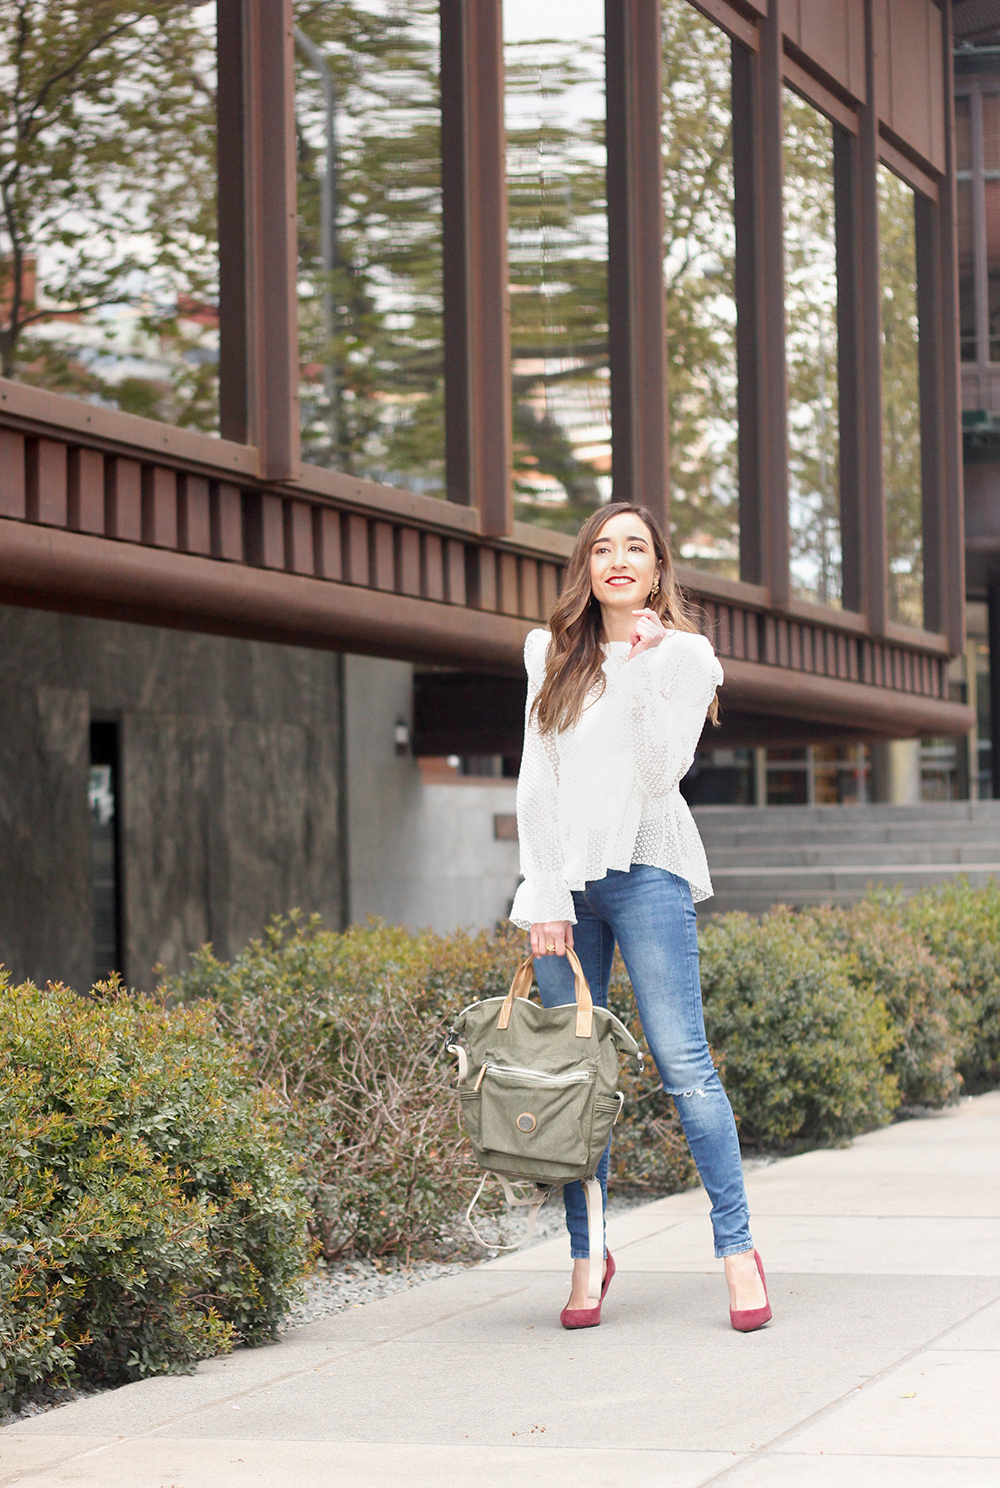 kipling backpack transformation collection khaki white lace blouse casual street style casual outfit 20191